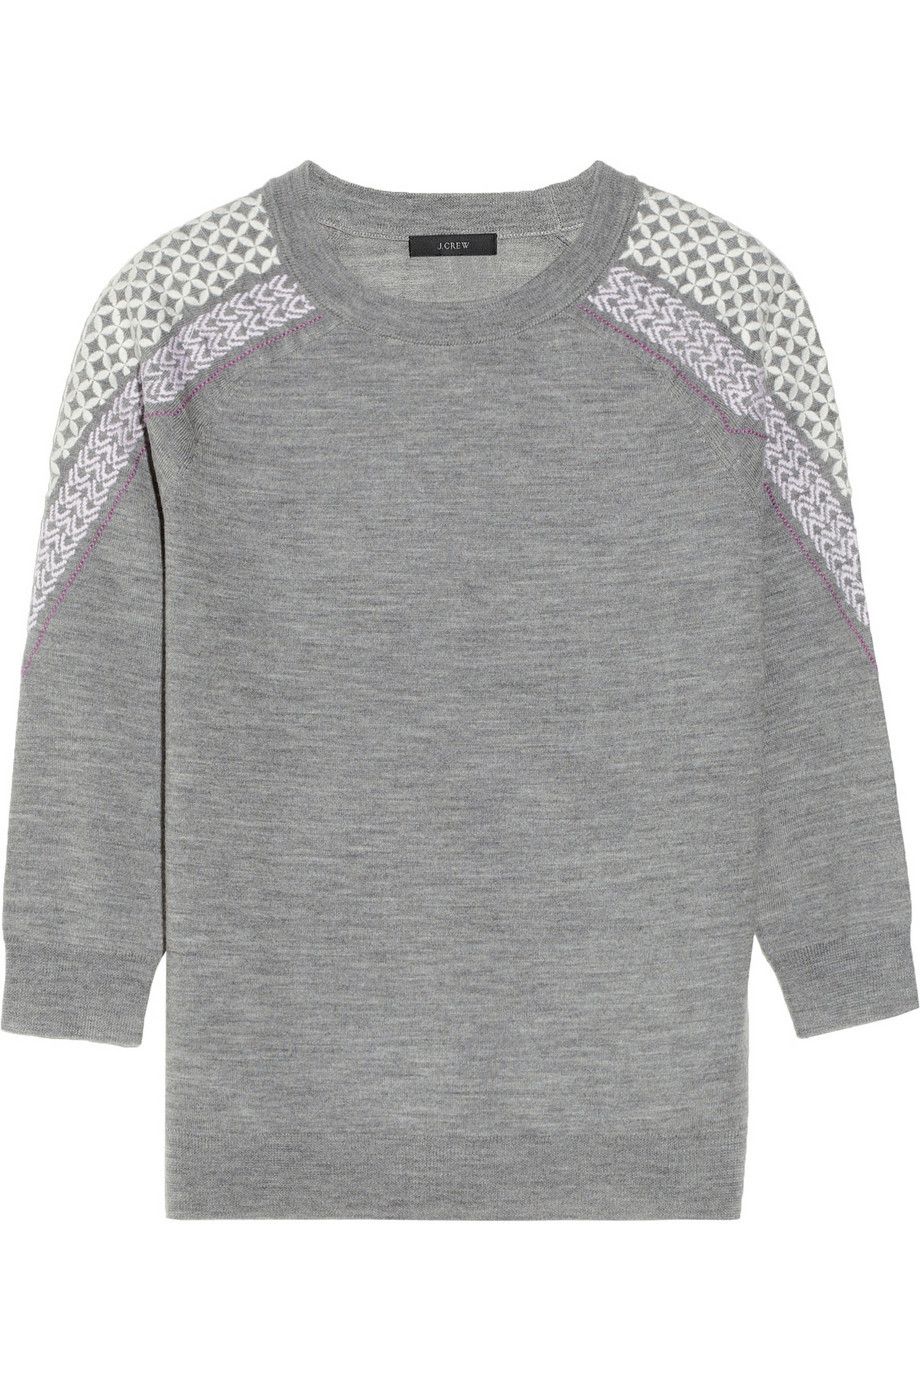 J.Crew   Tippi embroidered merino wool sweater   NET-A-PORTER.COM_files.jpg